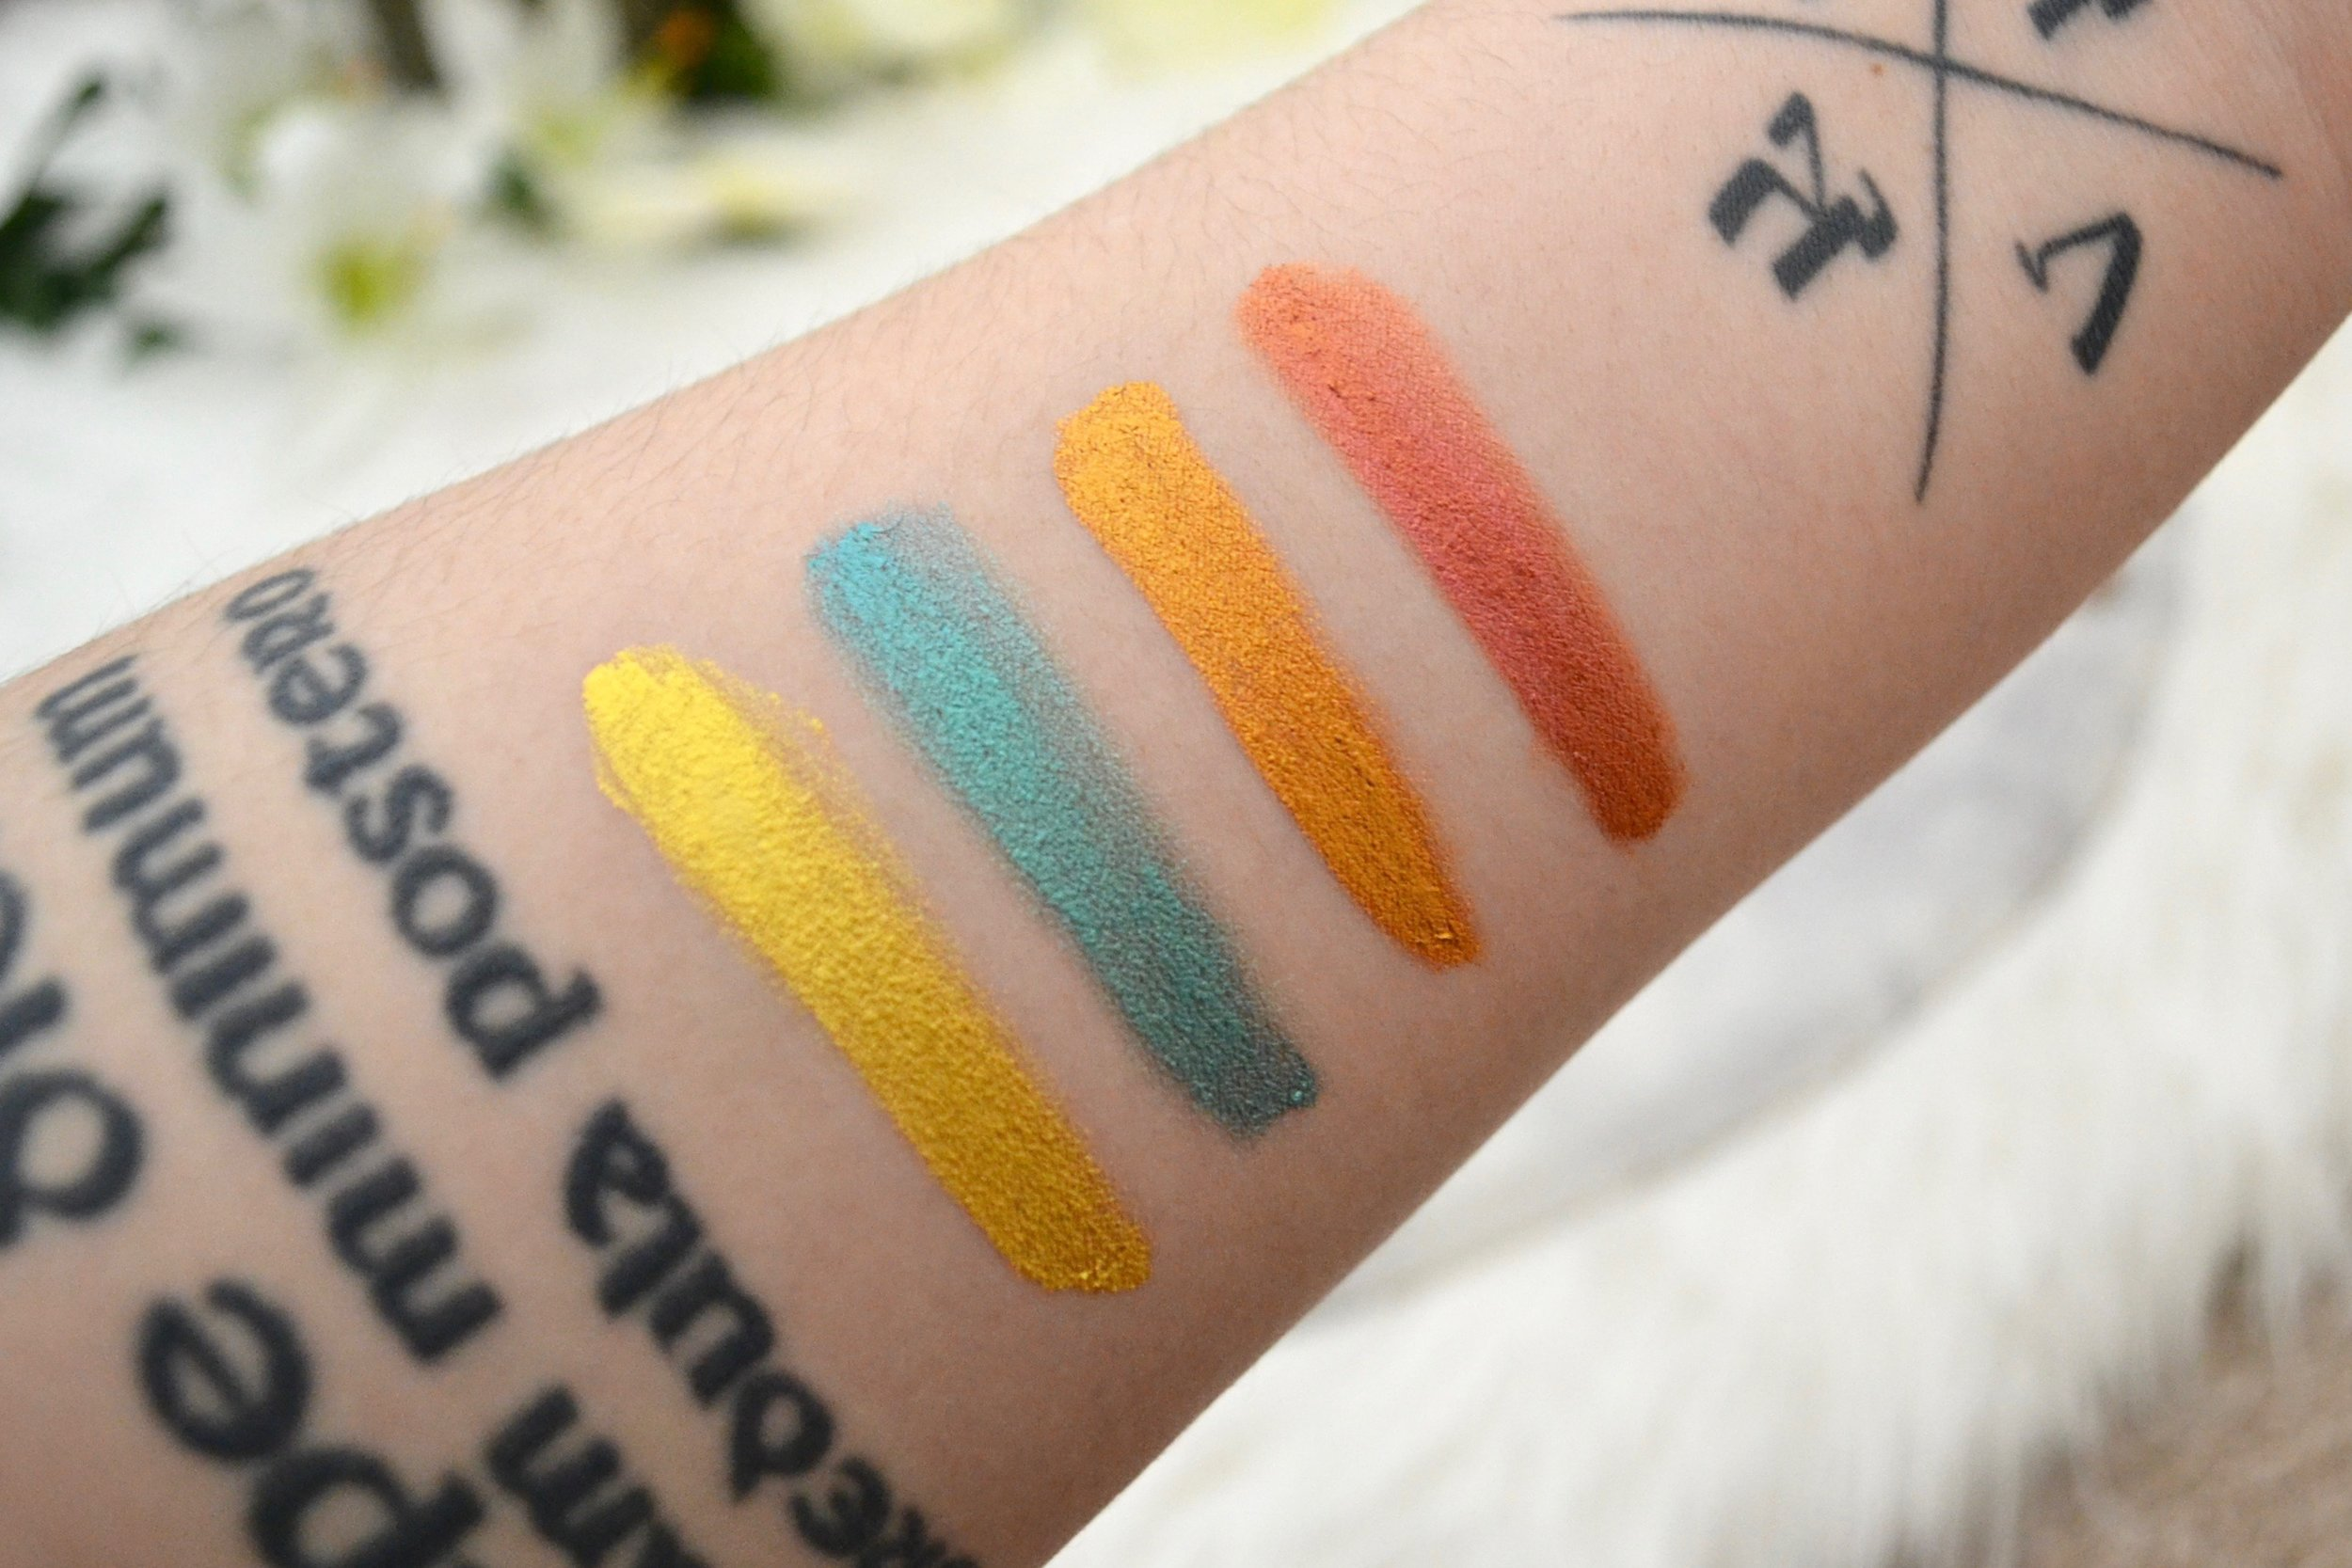 ColourPop Cosmetics Jelly Much Shadows - Review and Swatches